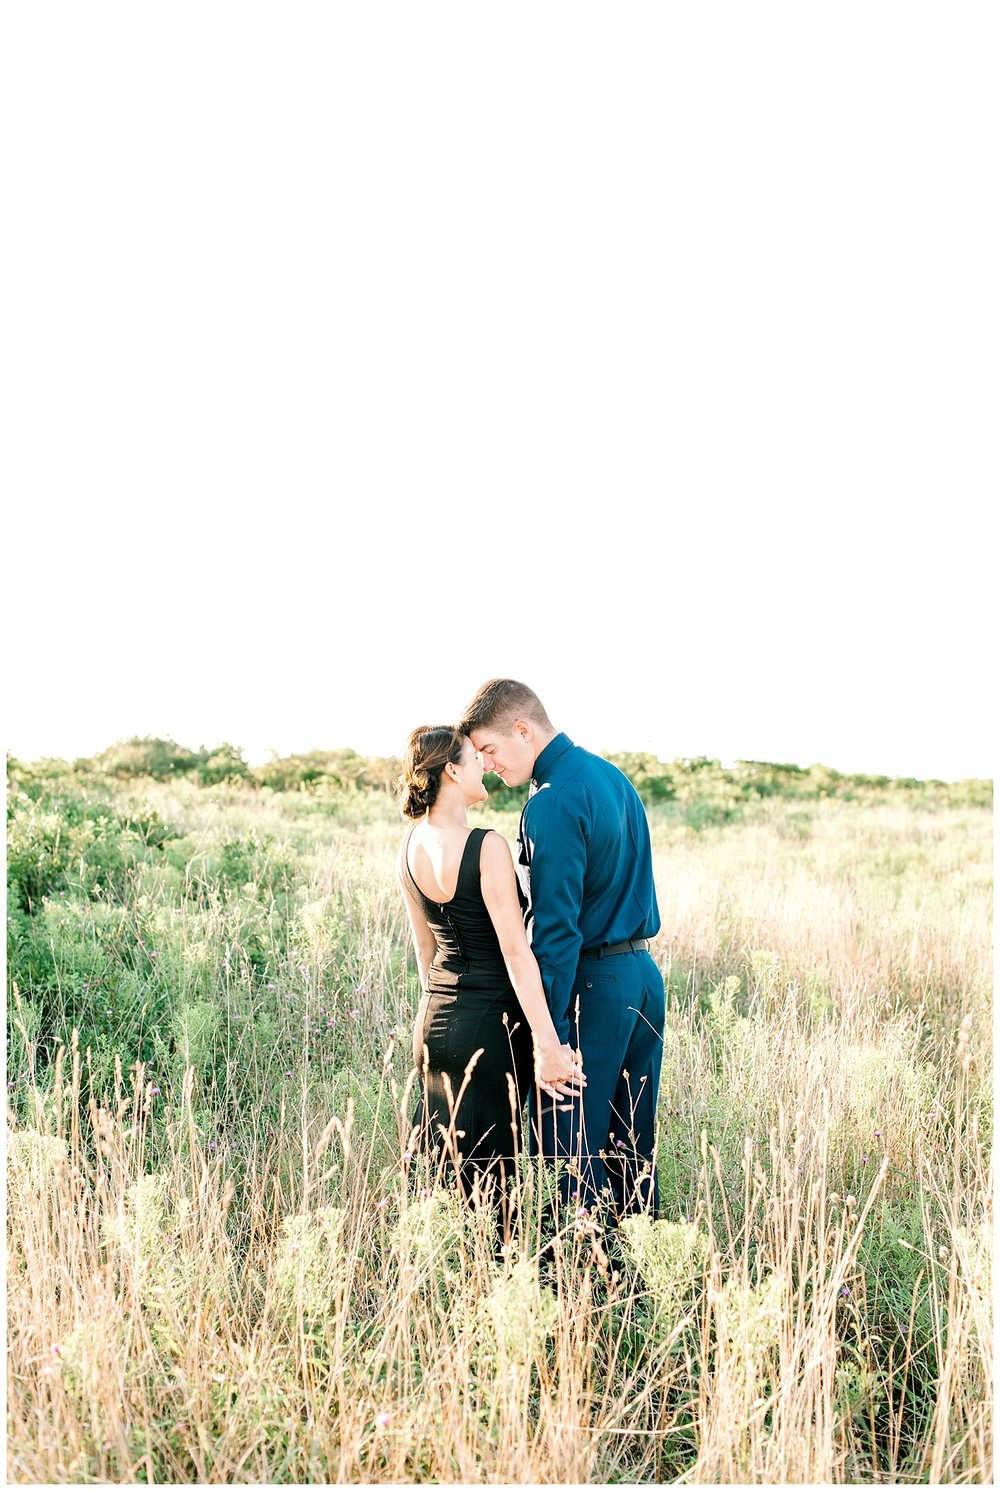 august18-rhode-island-engagement-photography-field-couples-portraits-field-1.jpg